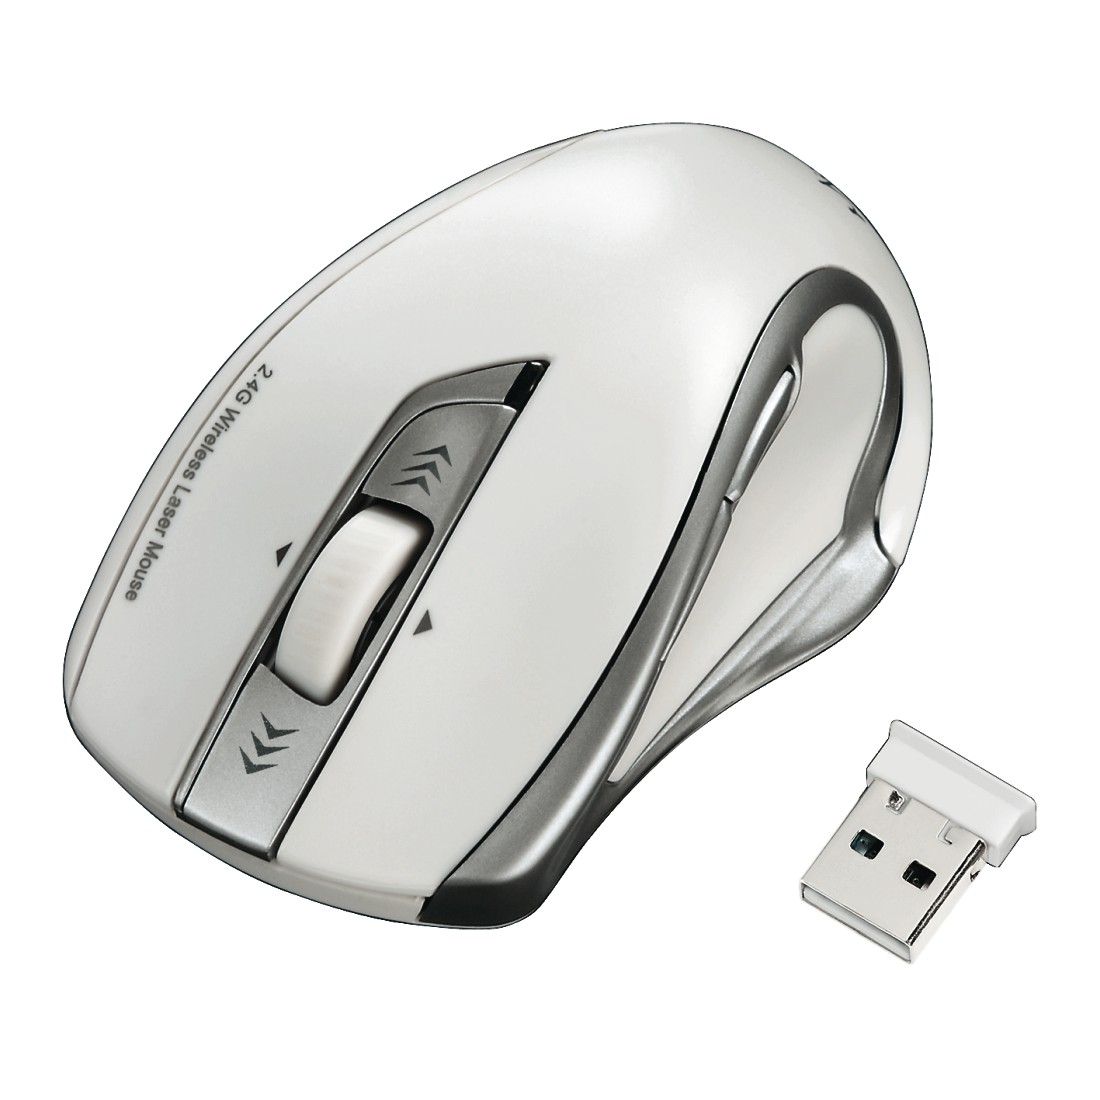 abx2 High-Res Image 2 - Hama, Mirano Wireless Laser Mouse, noiseless, white